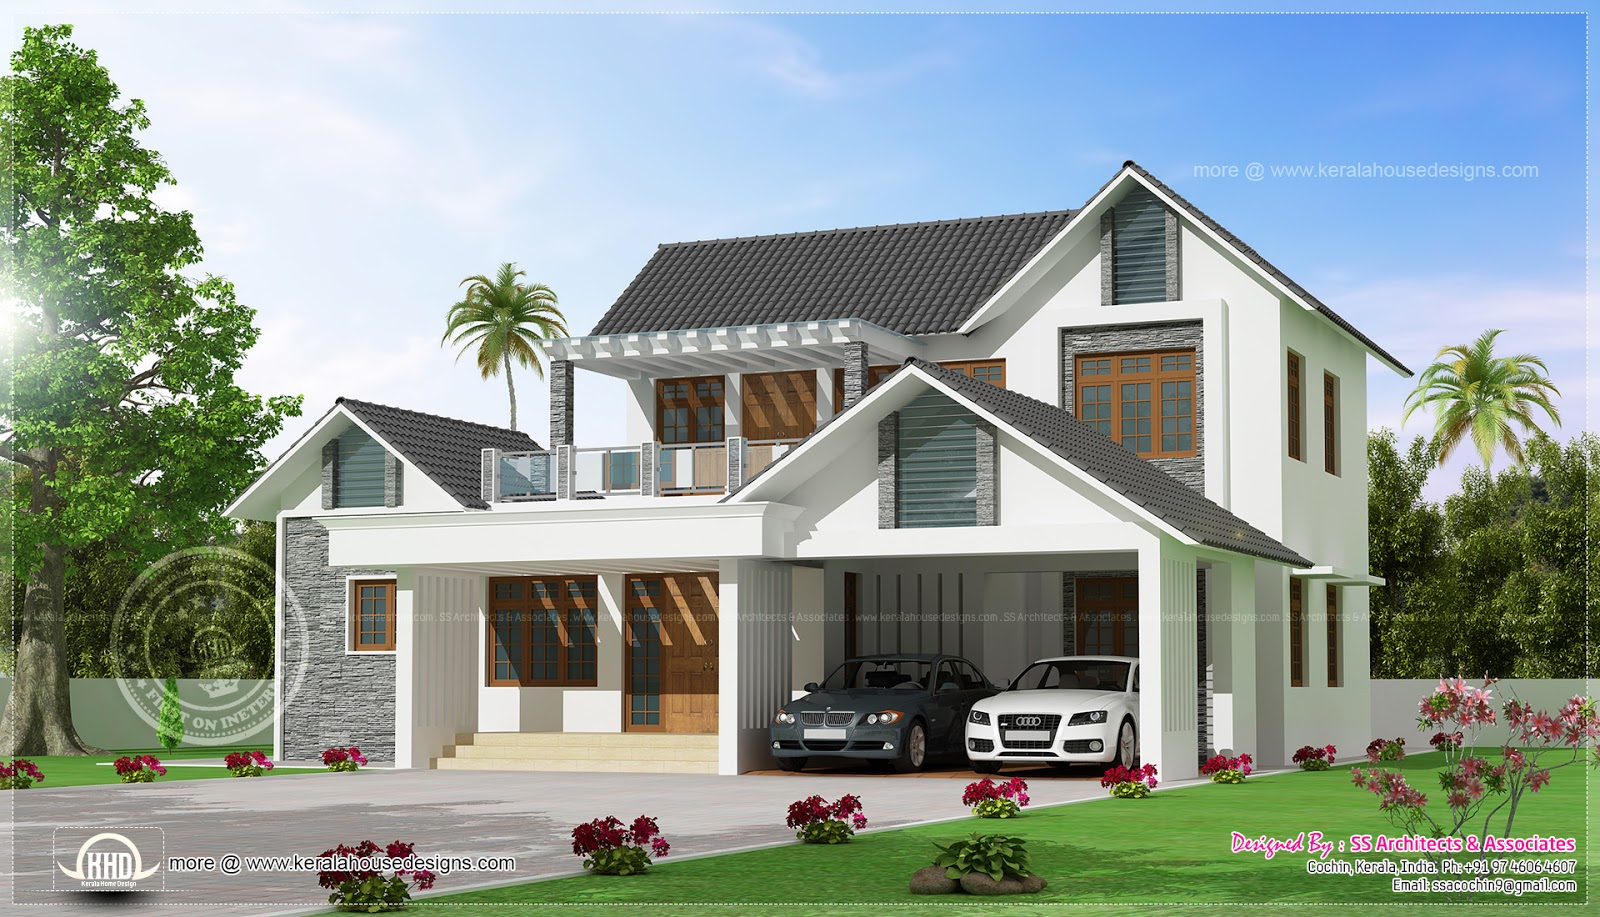 Awesome modern villa exterior elevation house design plans for Modern villa exterior design